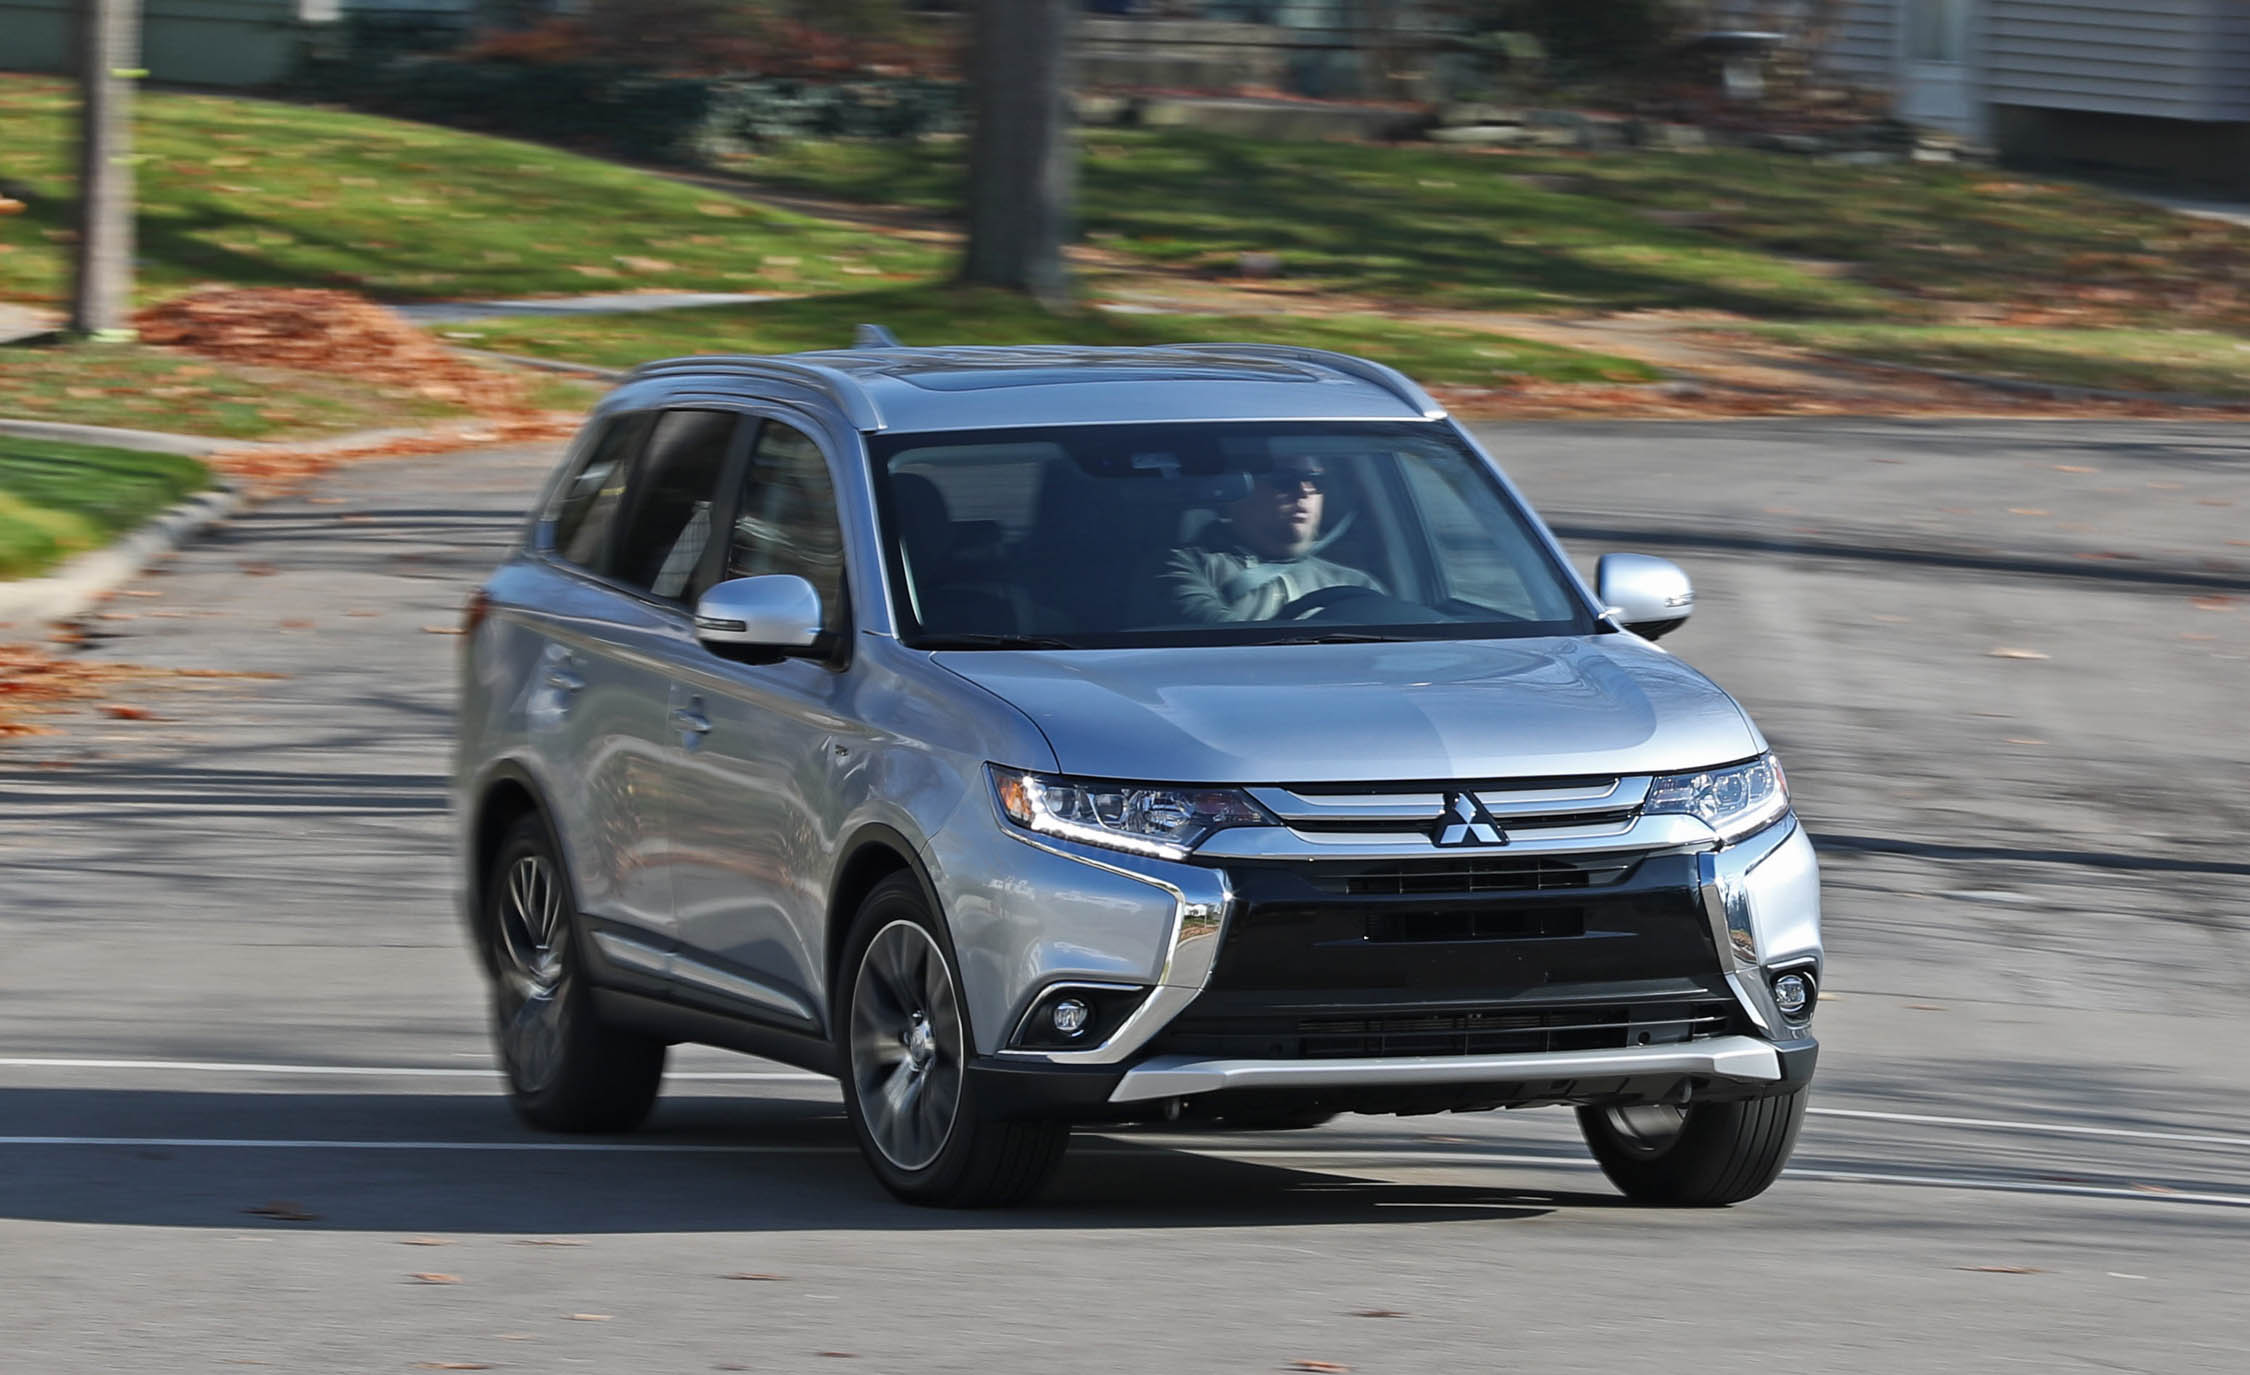 2017 Mitsubishi Outlander Gt Test Drive Front View (View 17 of 34)